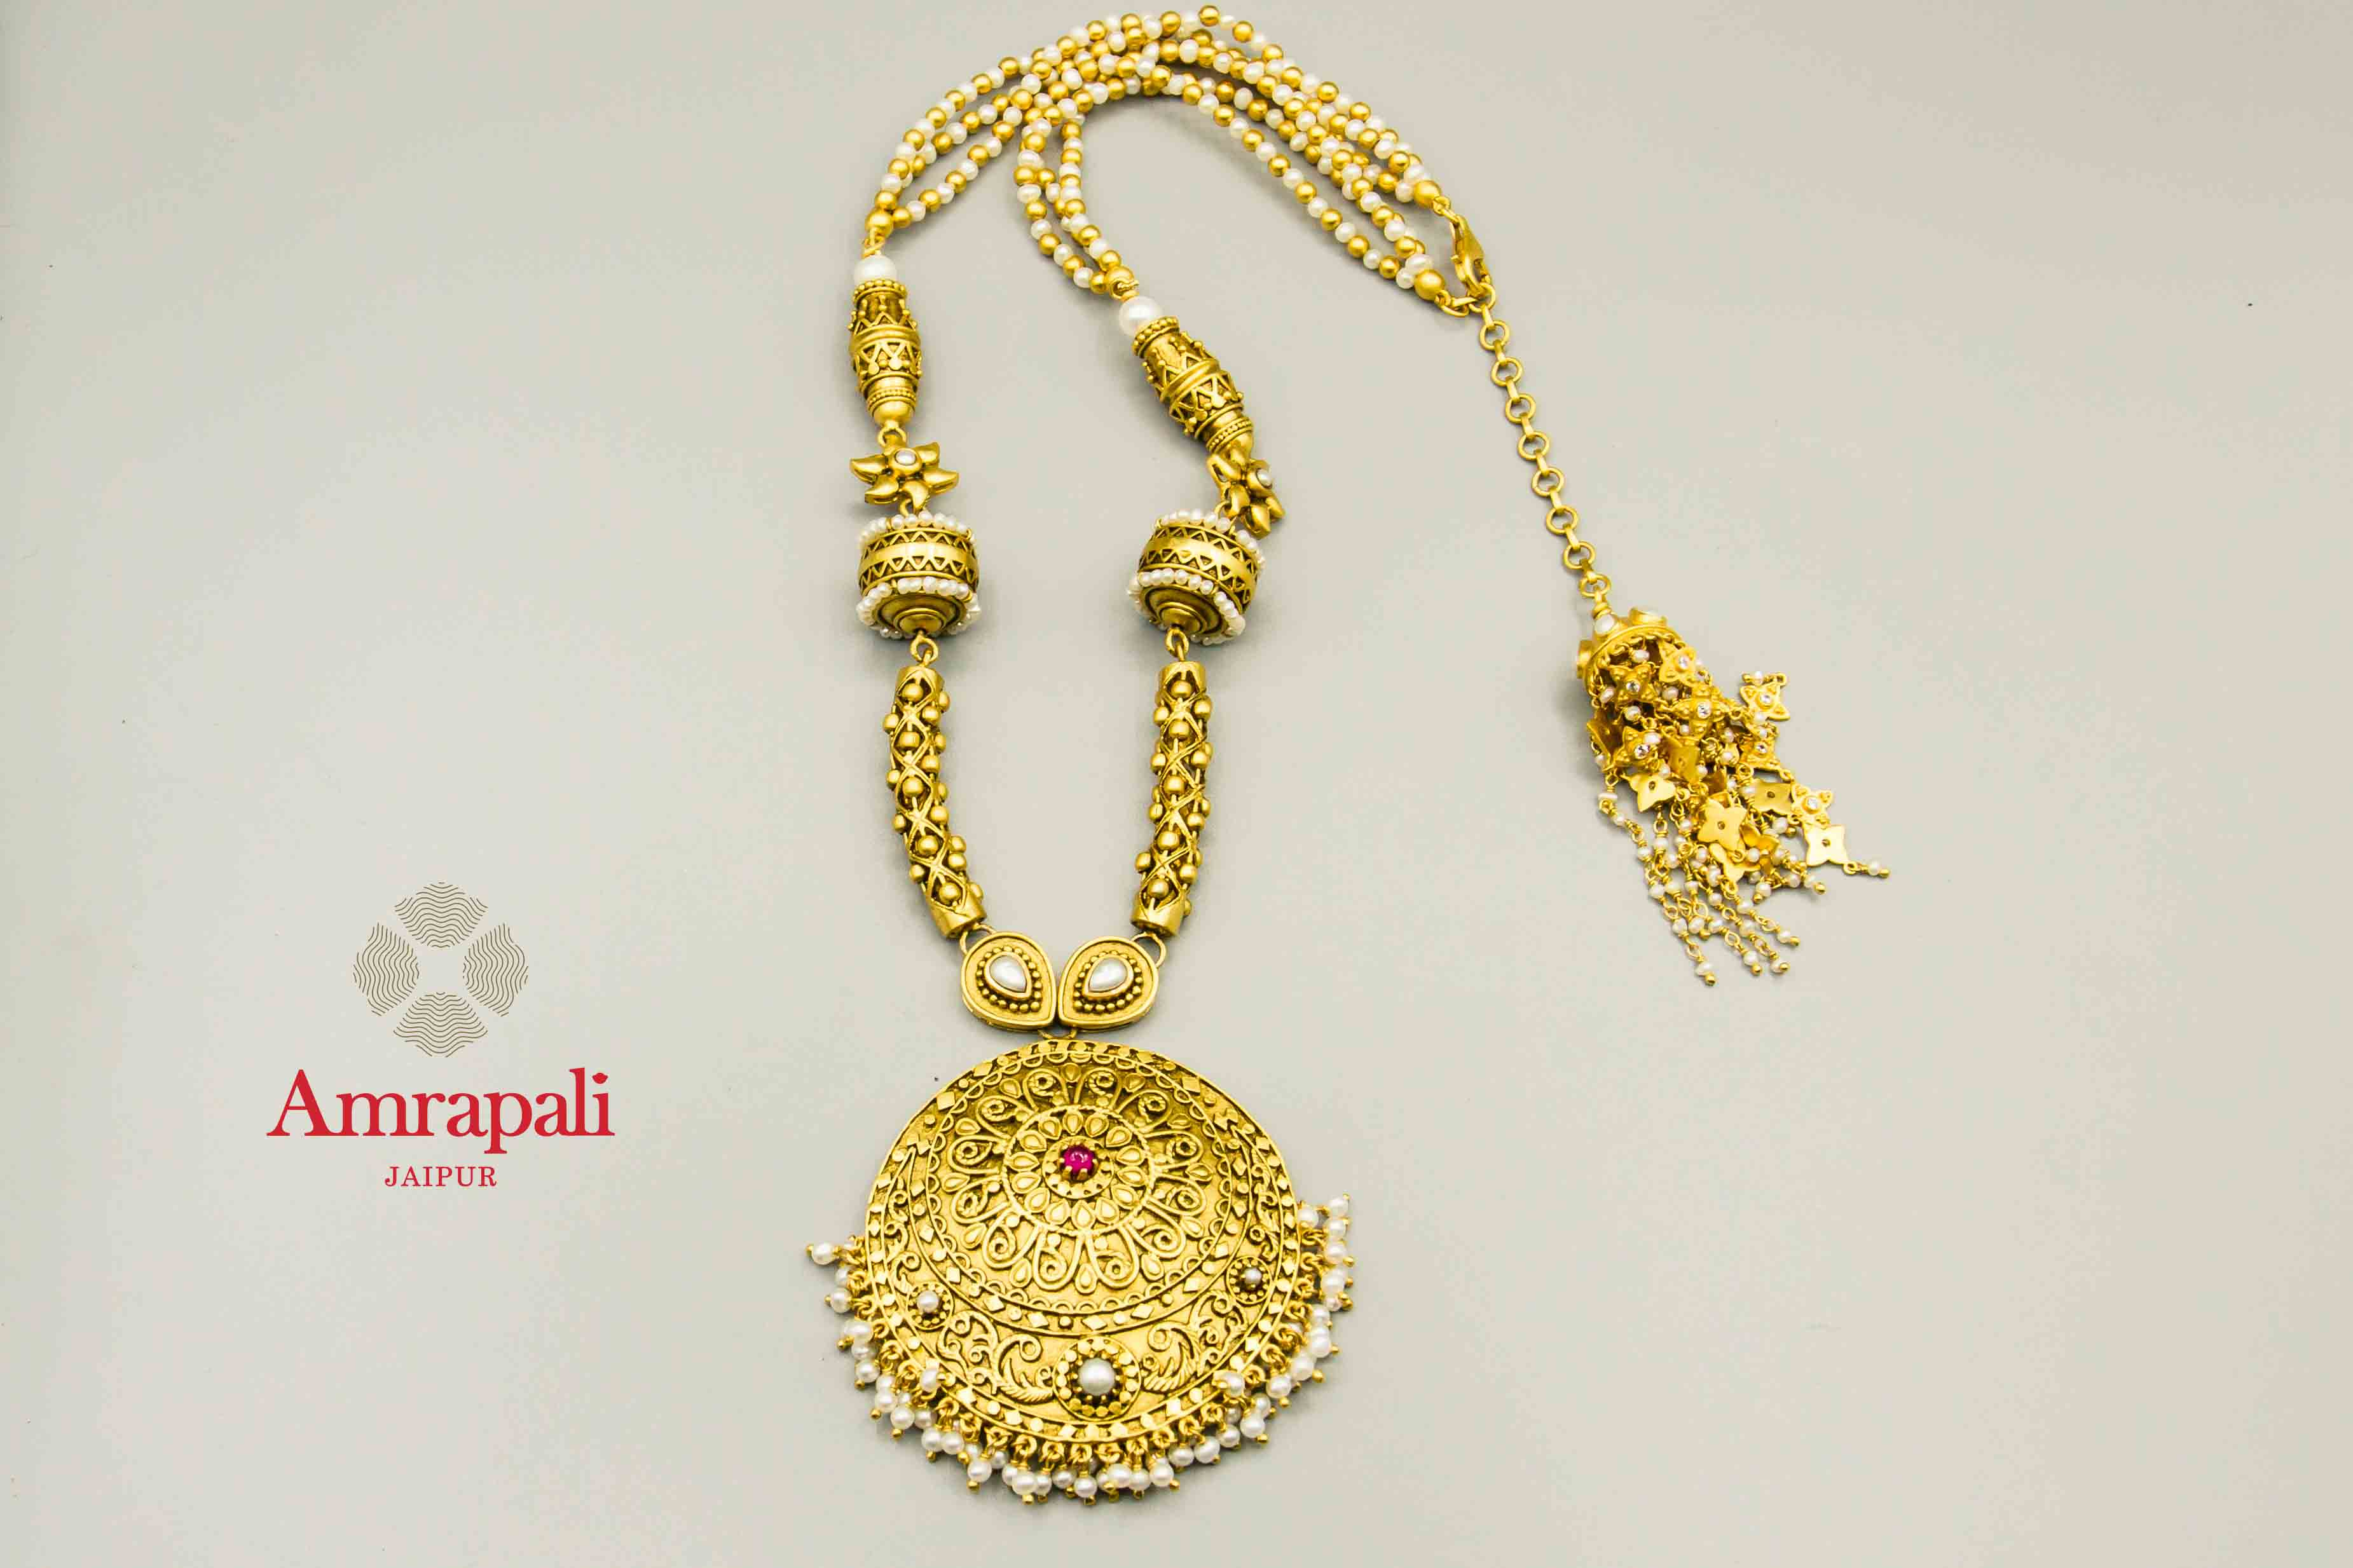 20C240 Filigree Multi Motif Pearl Silver Gold Plated Necklace